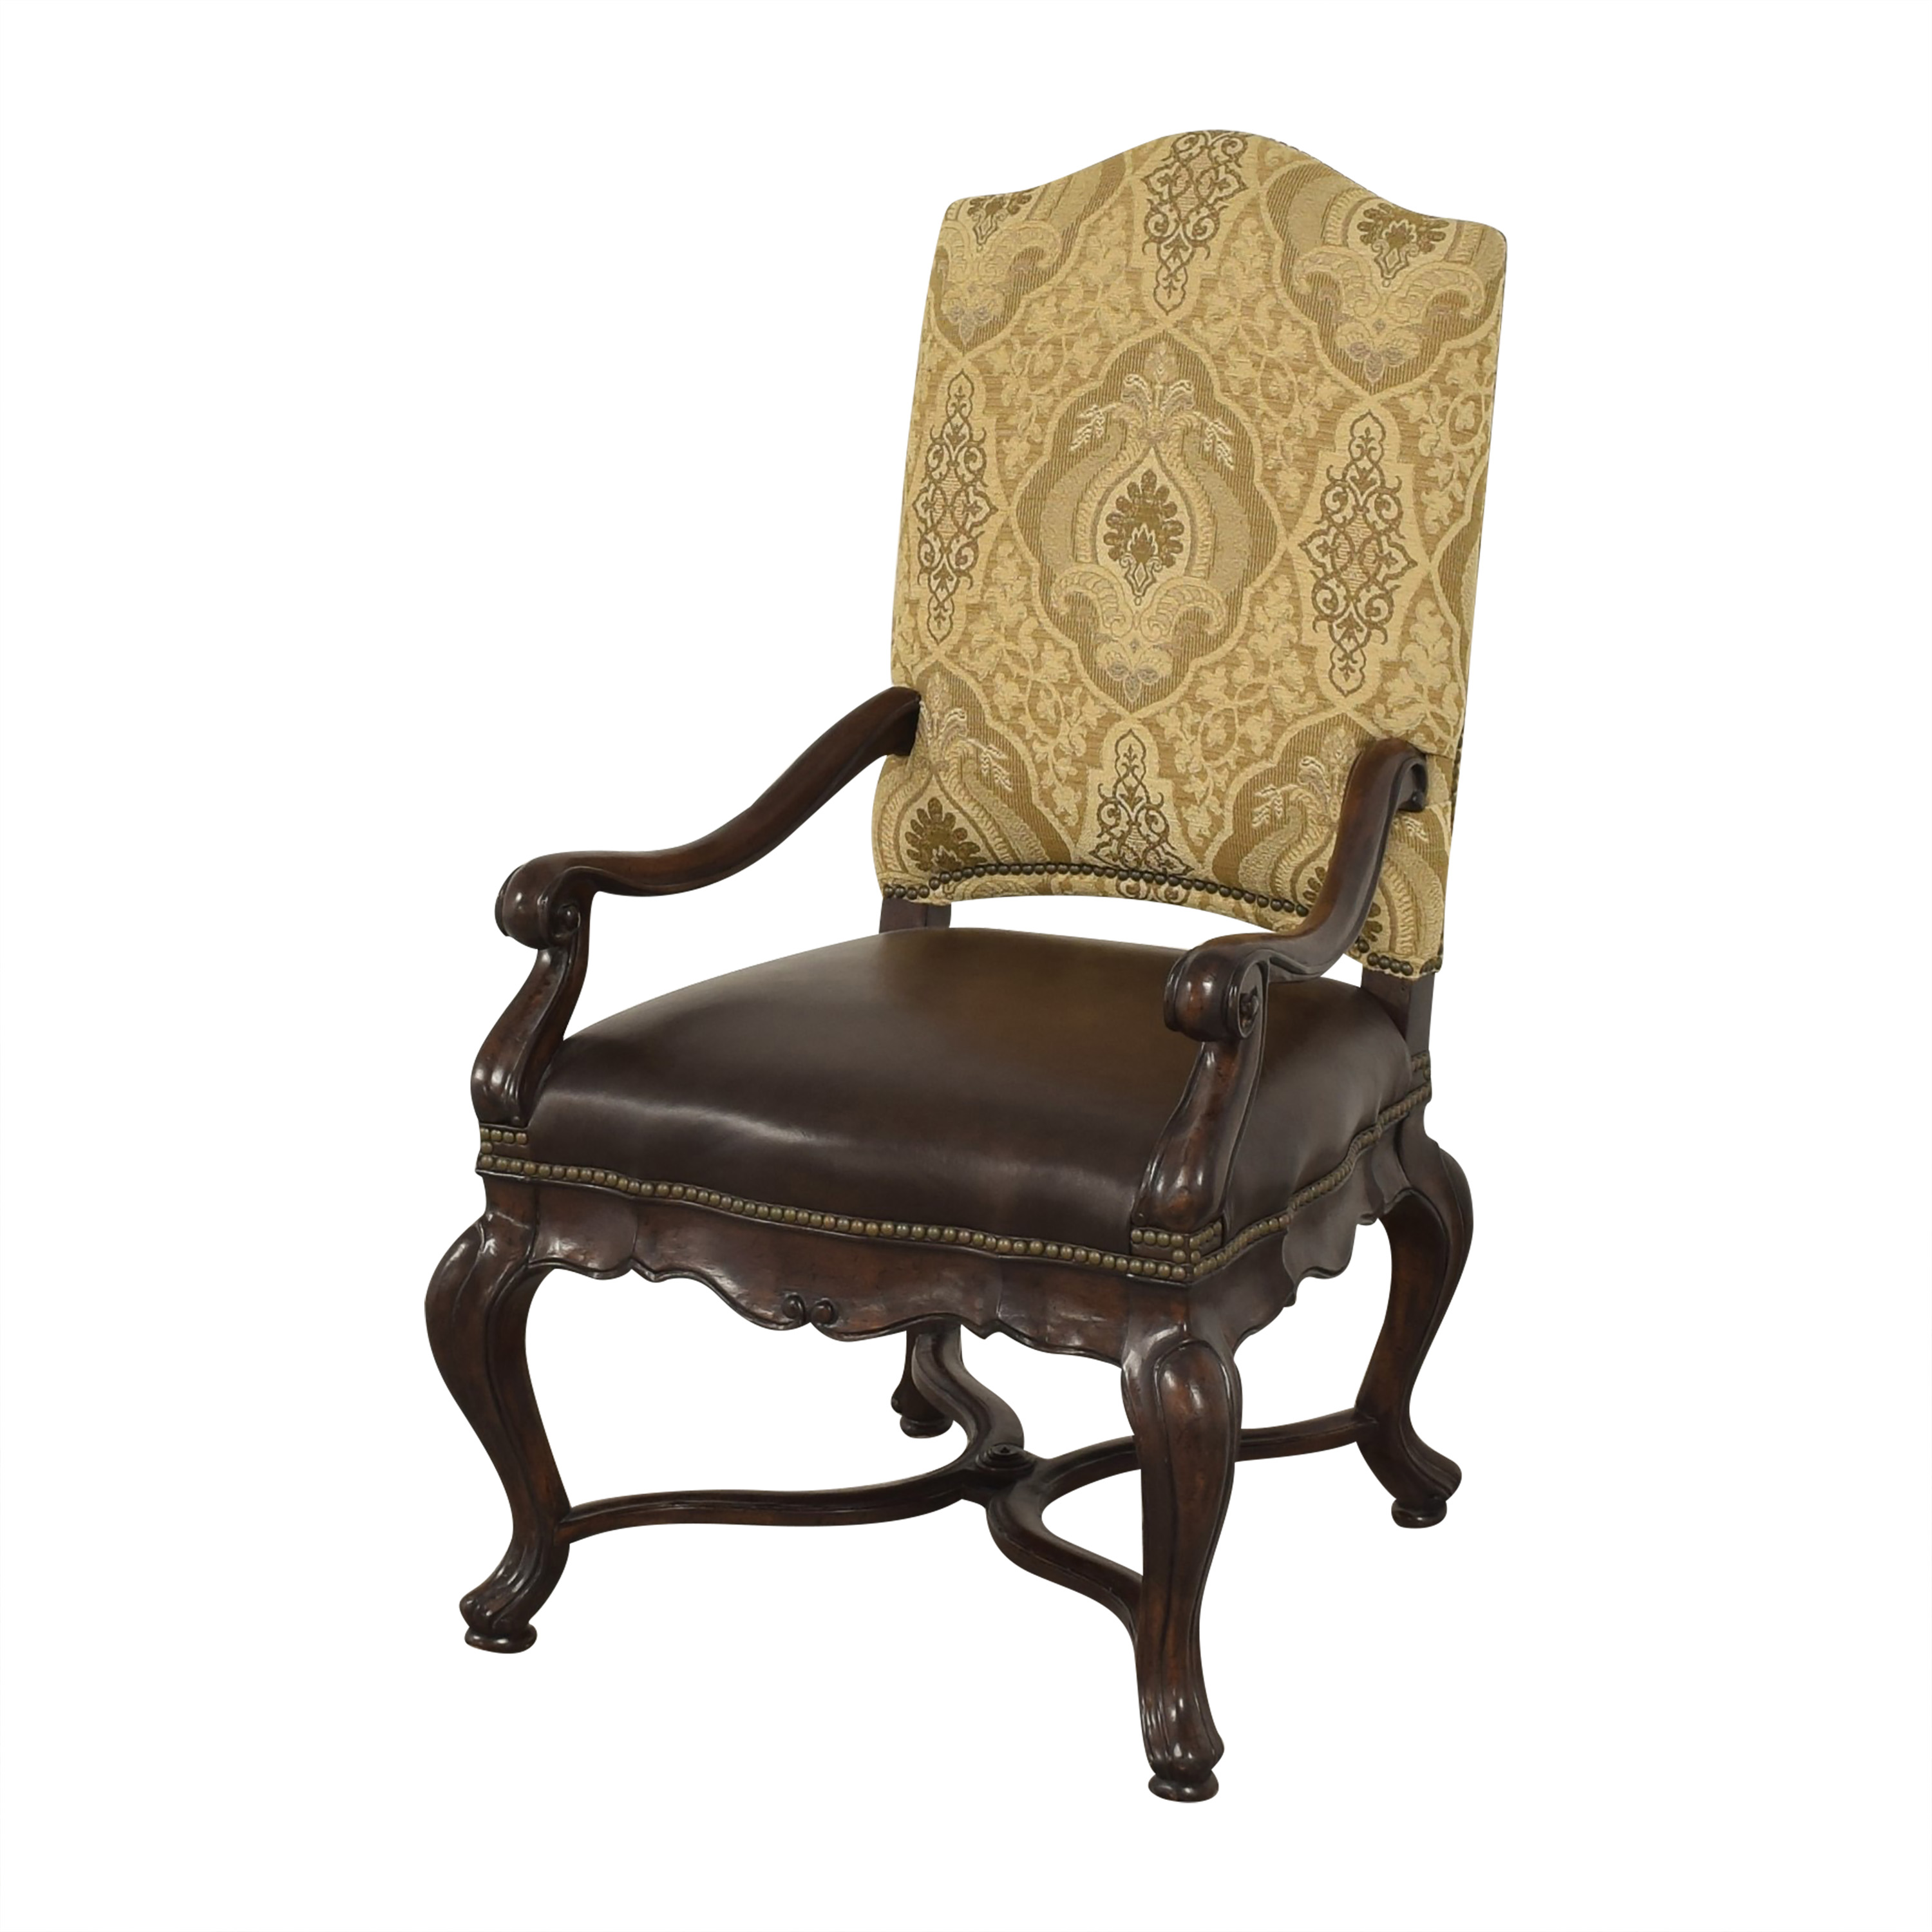 Thomasville Thomasville Hills of Tuscany Dining Chairs coupon